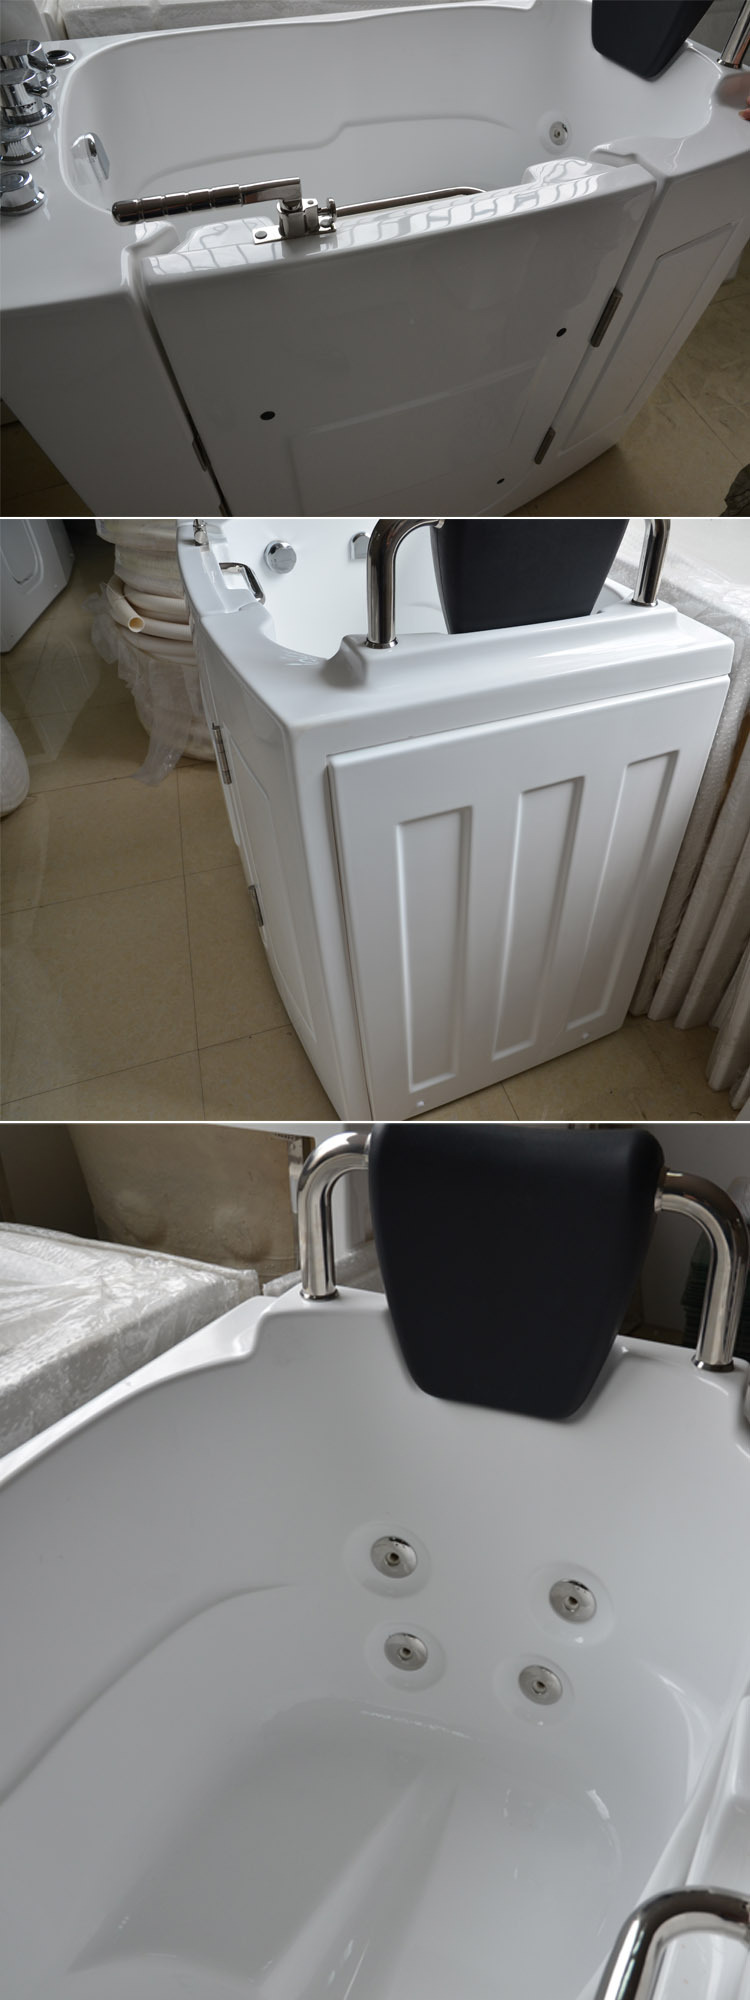 HS-1108 old bathtub sale, bathtub support for elder, bathtub with door price